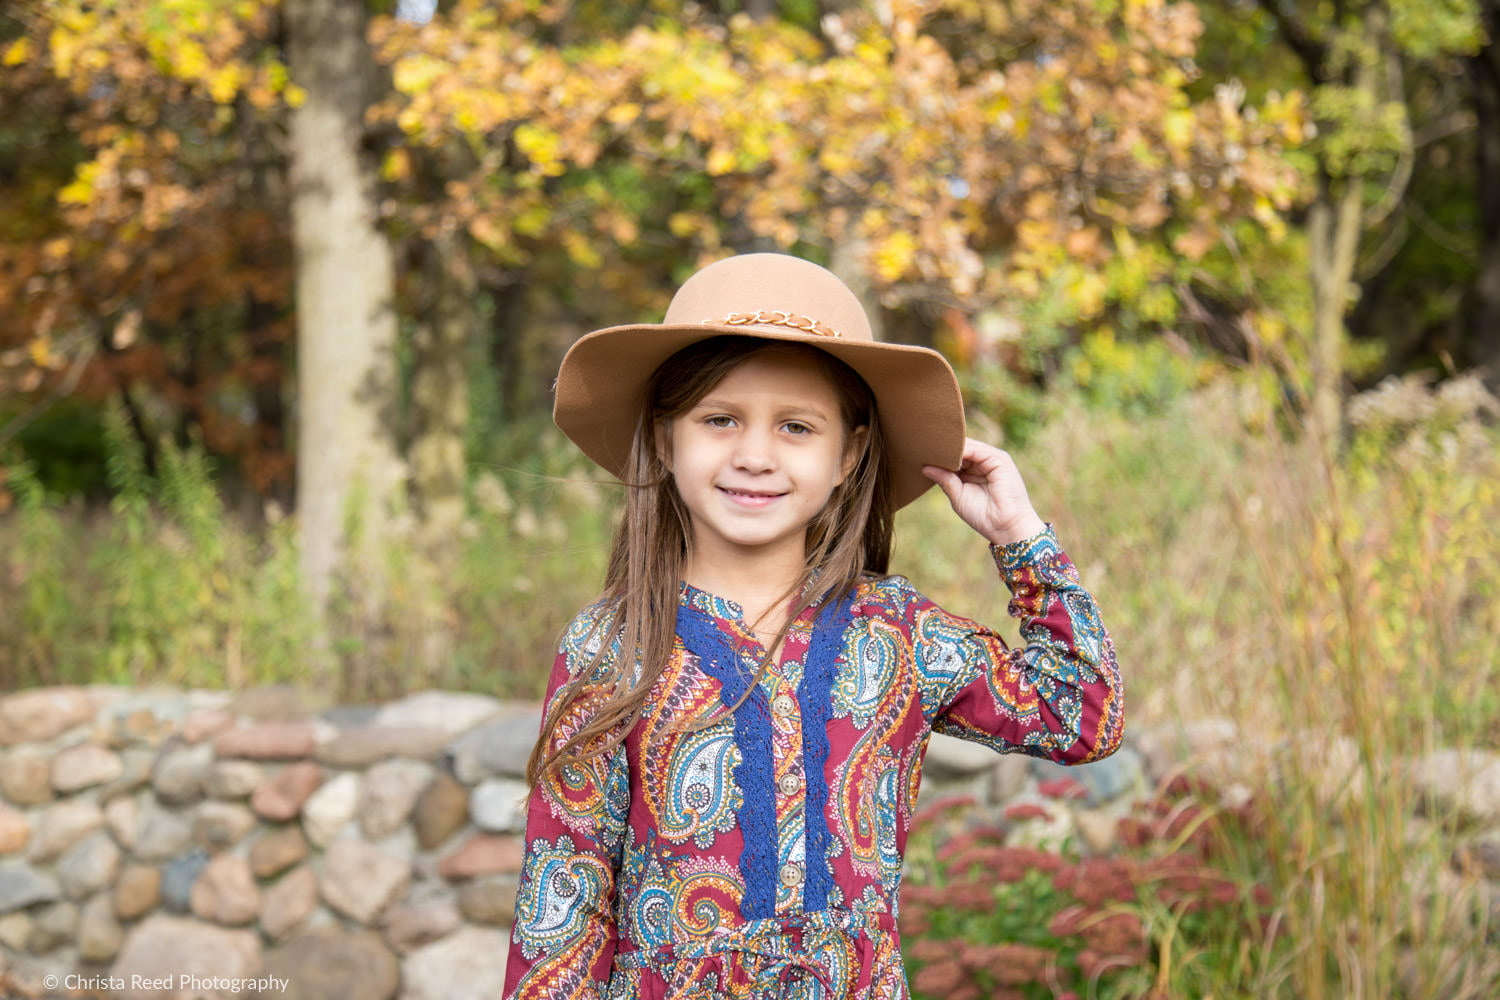 portrait of a girl in a hat and paisley dress